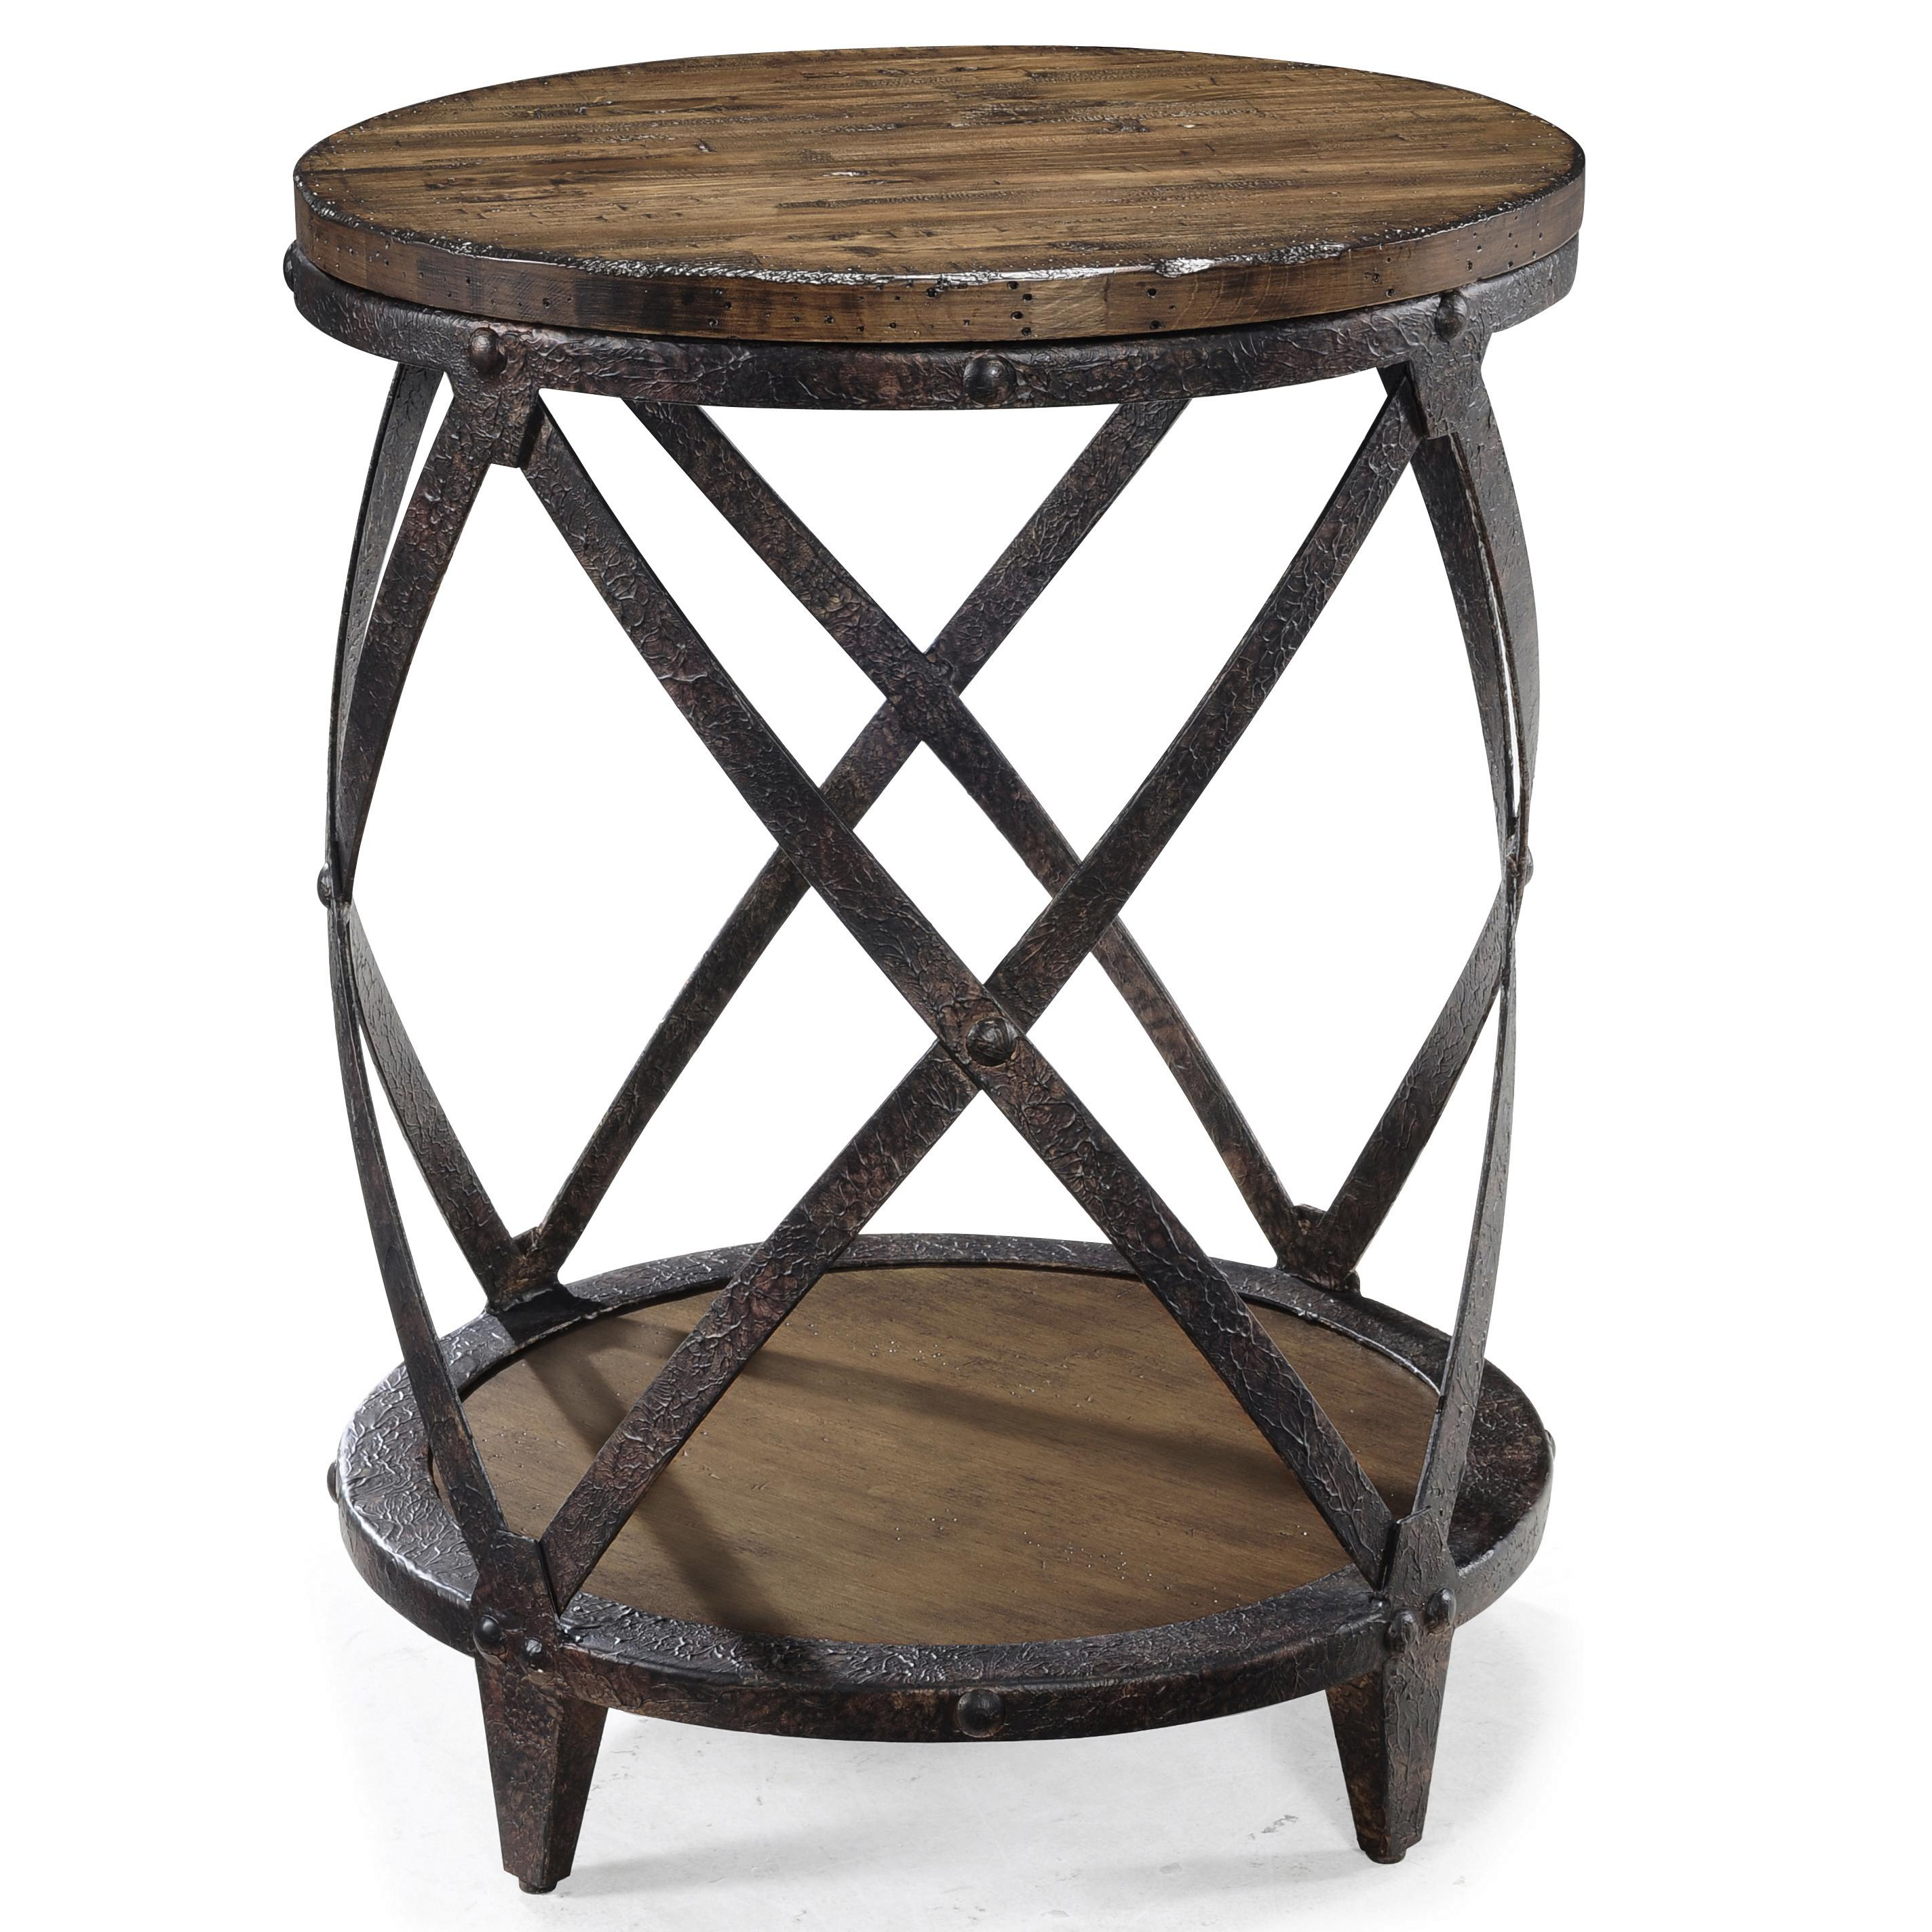 Rustic Wood End Table Pinebrook Round Accent End Table With Rustic Iron Legs By Magnussen Home At Sam Levitz Furniture